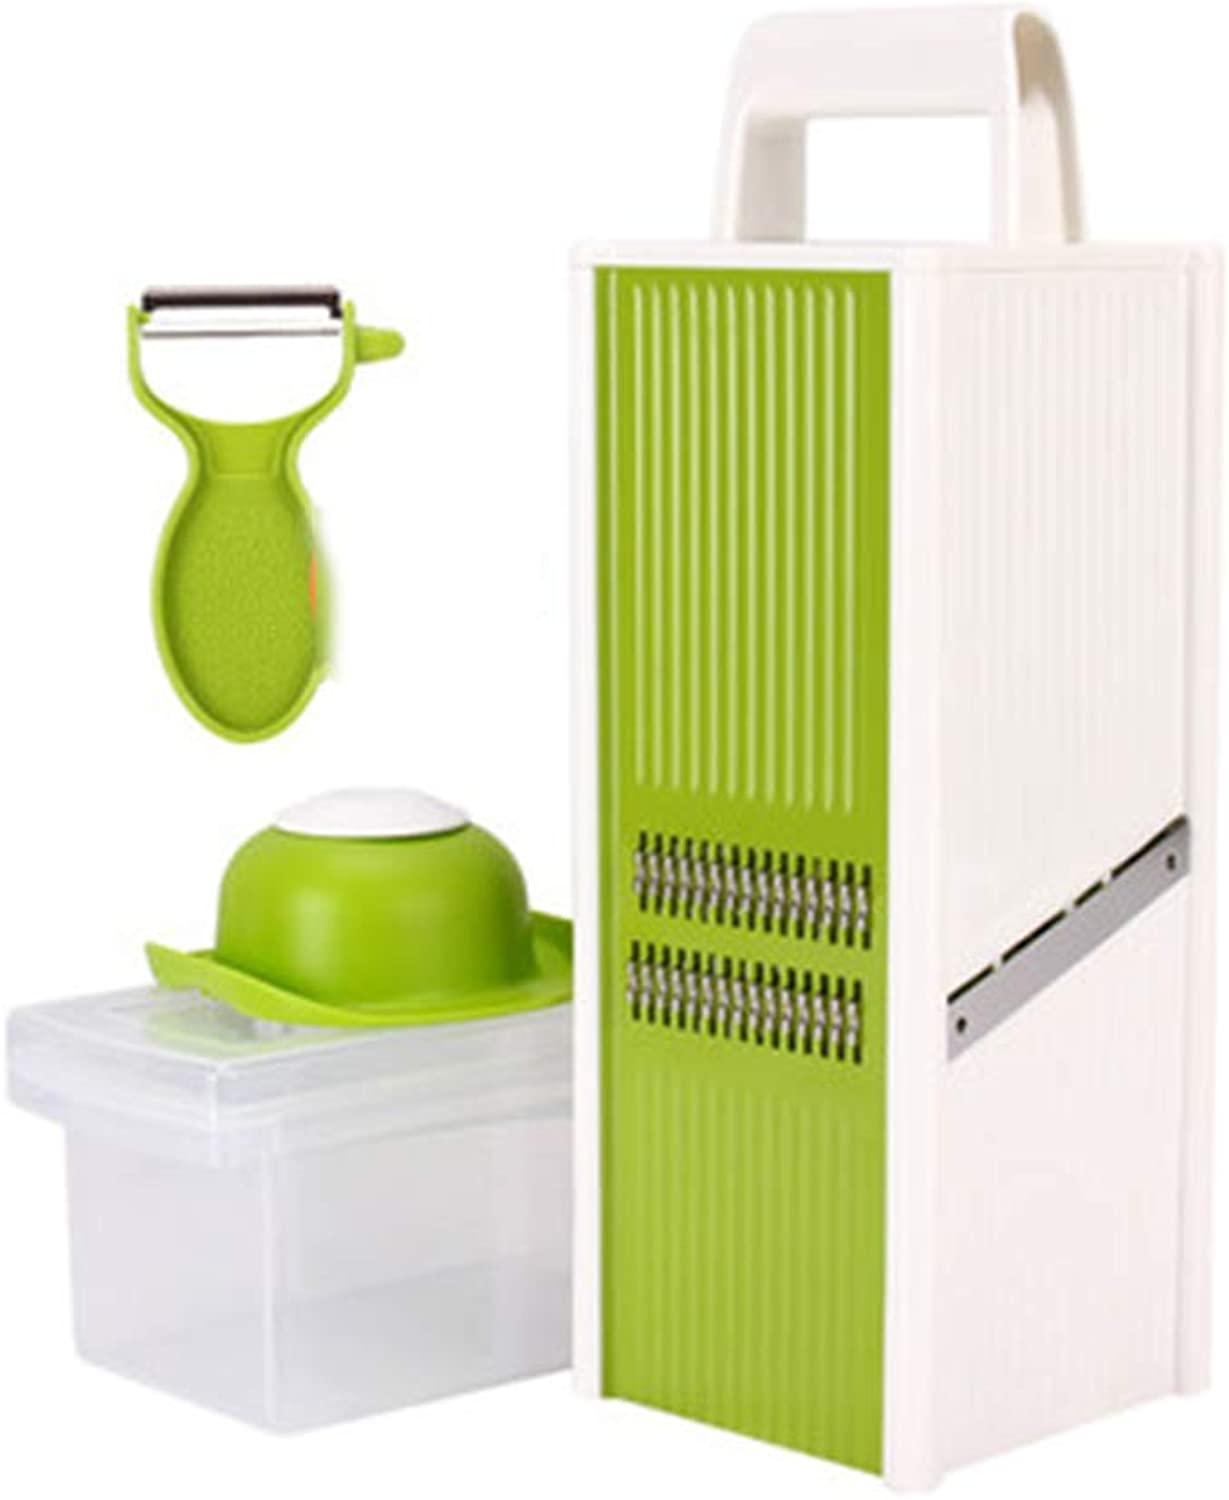 Vegetable Slicer Stainless Steel 4 Sides Cutter with Transparent Storage Container and Fruit Peeler for Vegetable Fruit Ginger Garlic Chopper